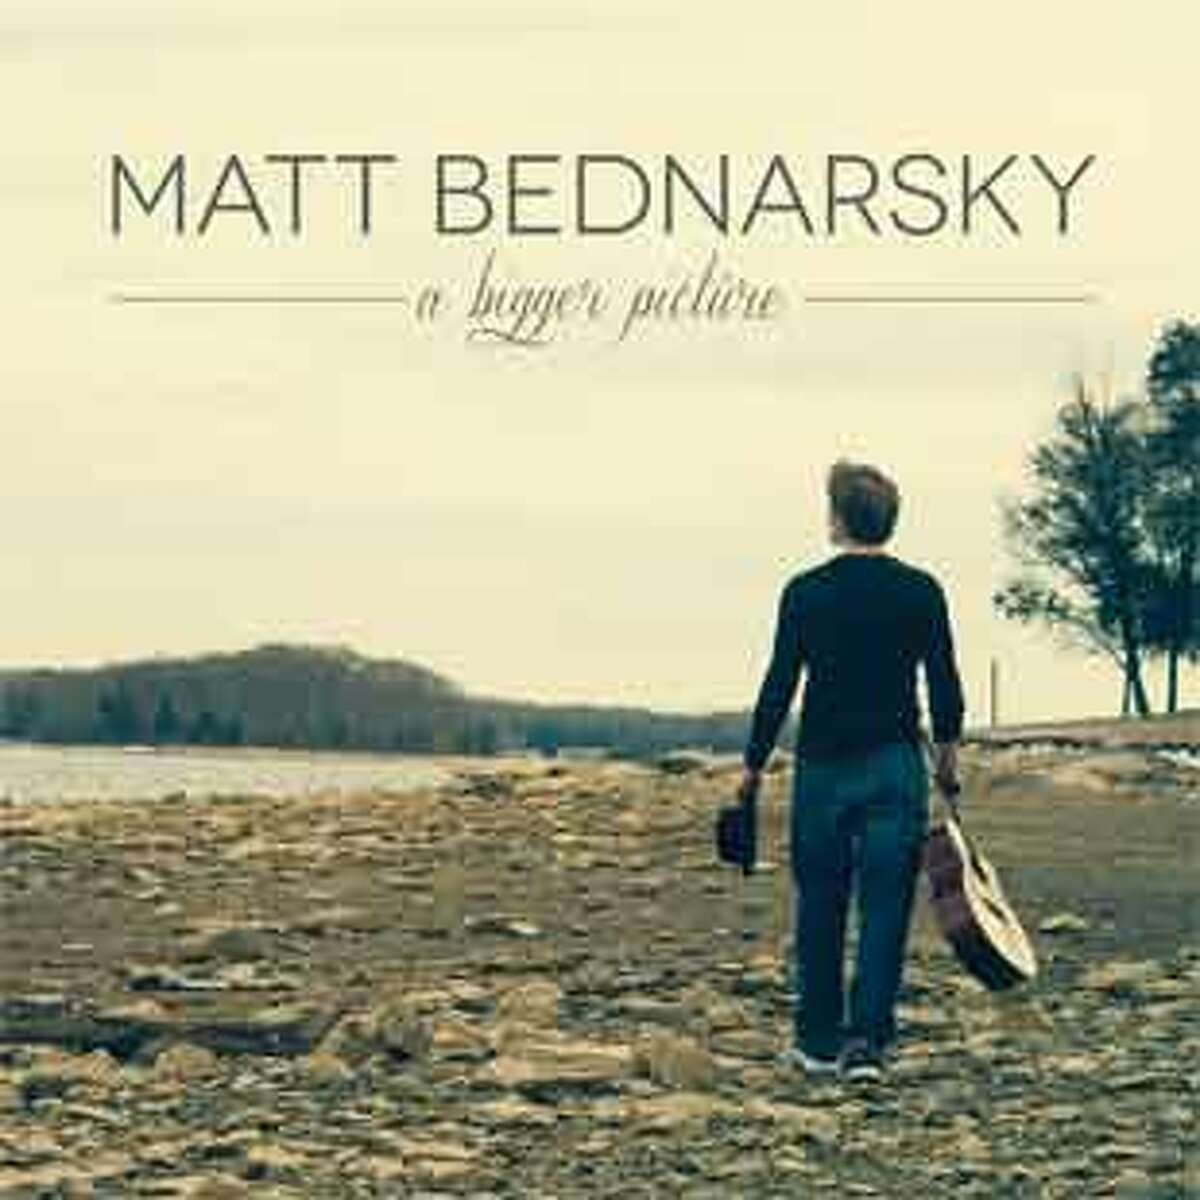 The cover to Matt Bednarsky's latest album.